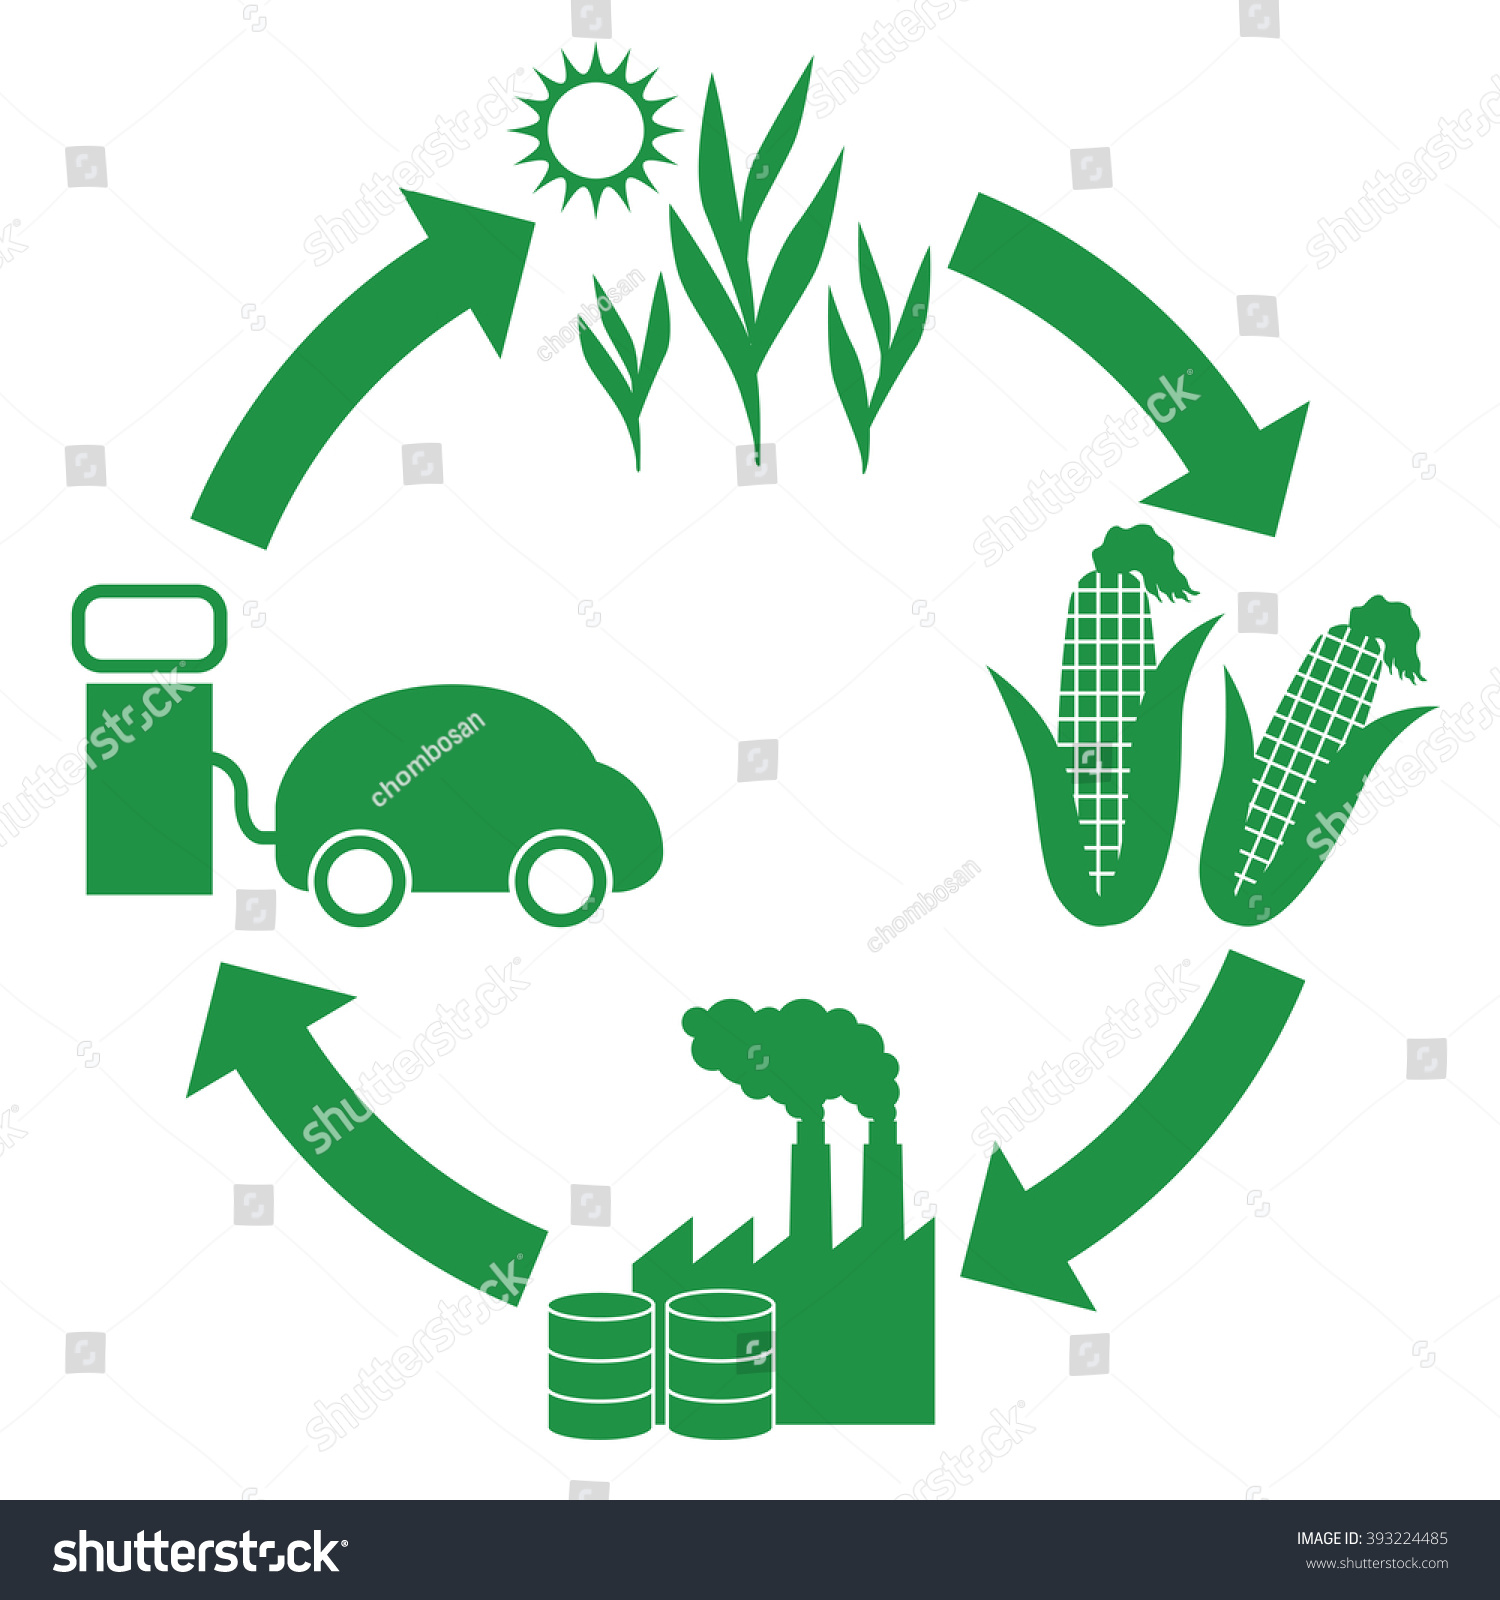 corn plant life cycle diagram 2001 honda civic stereo wiring biofuel biomass ethanol stock vector